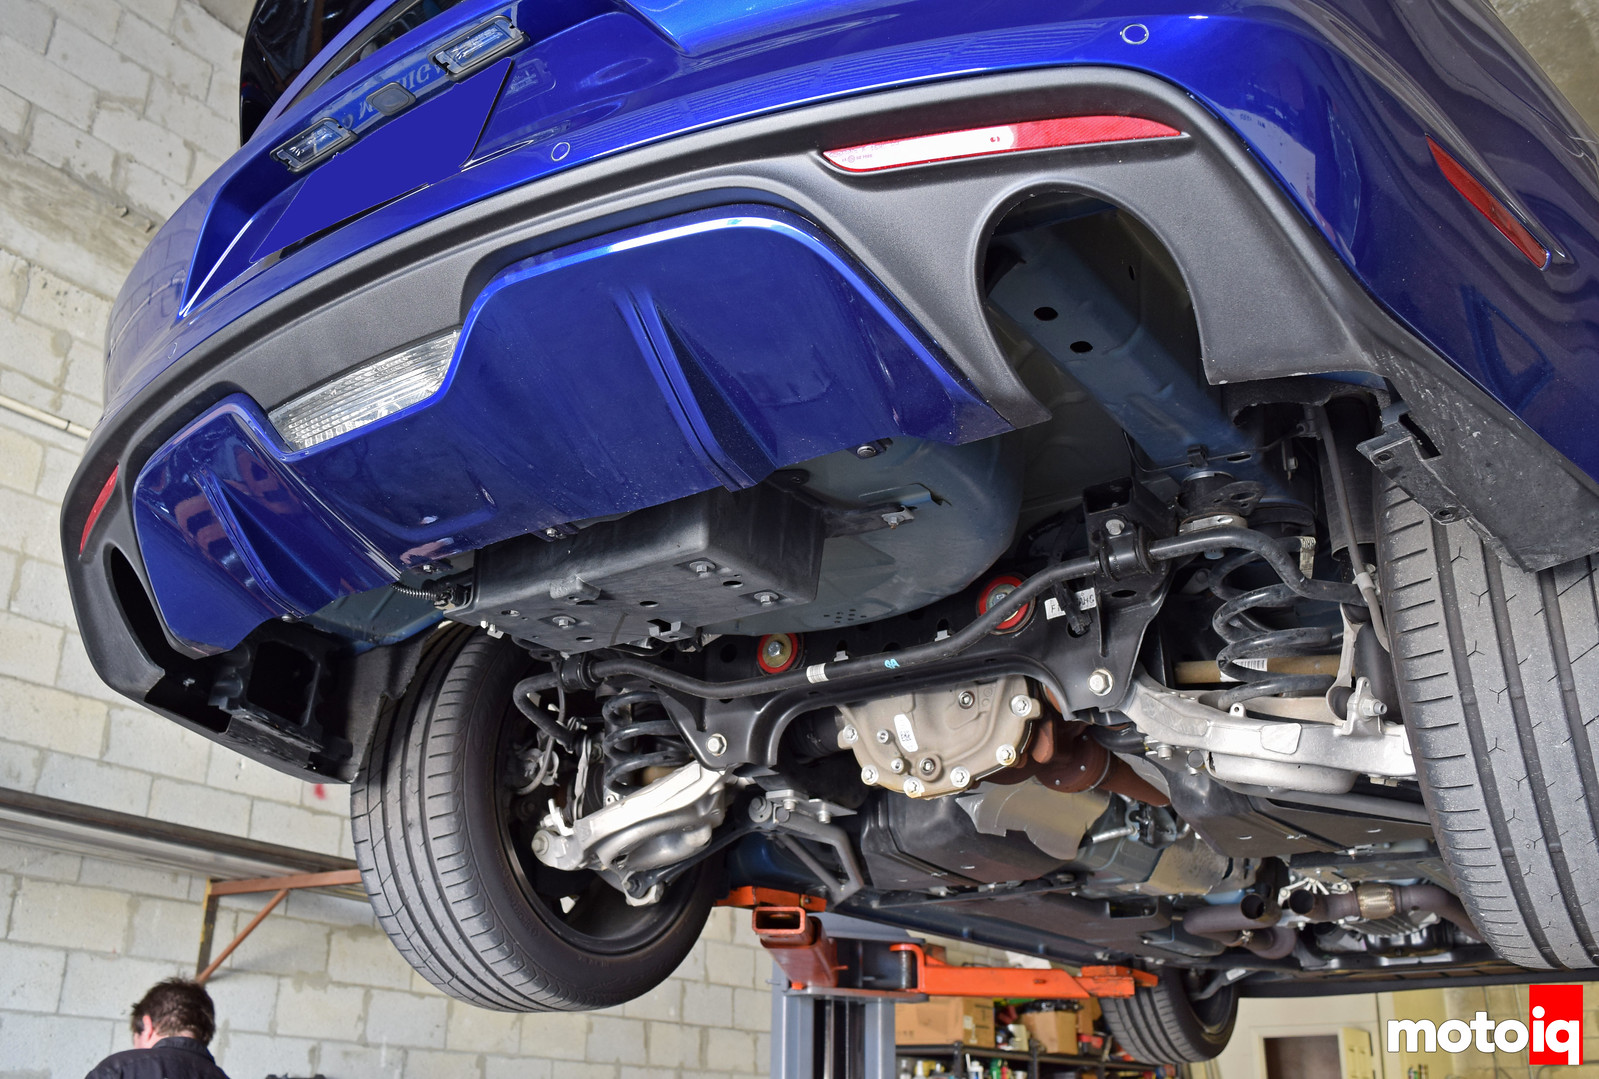 2015 mustang gt rear exhaust removed